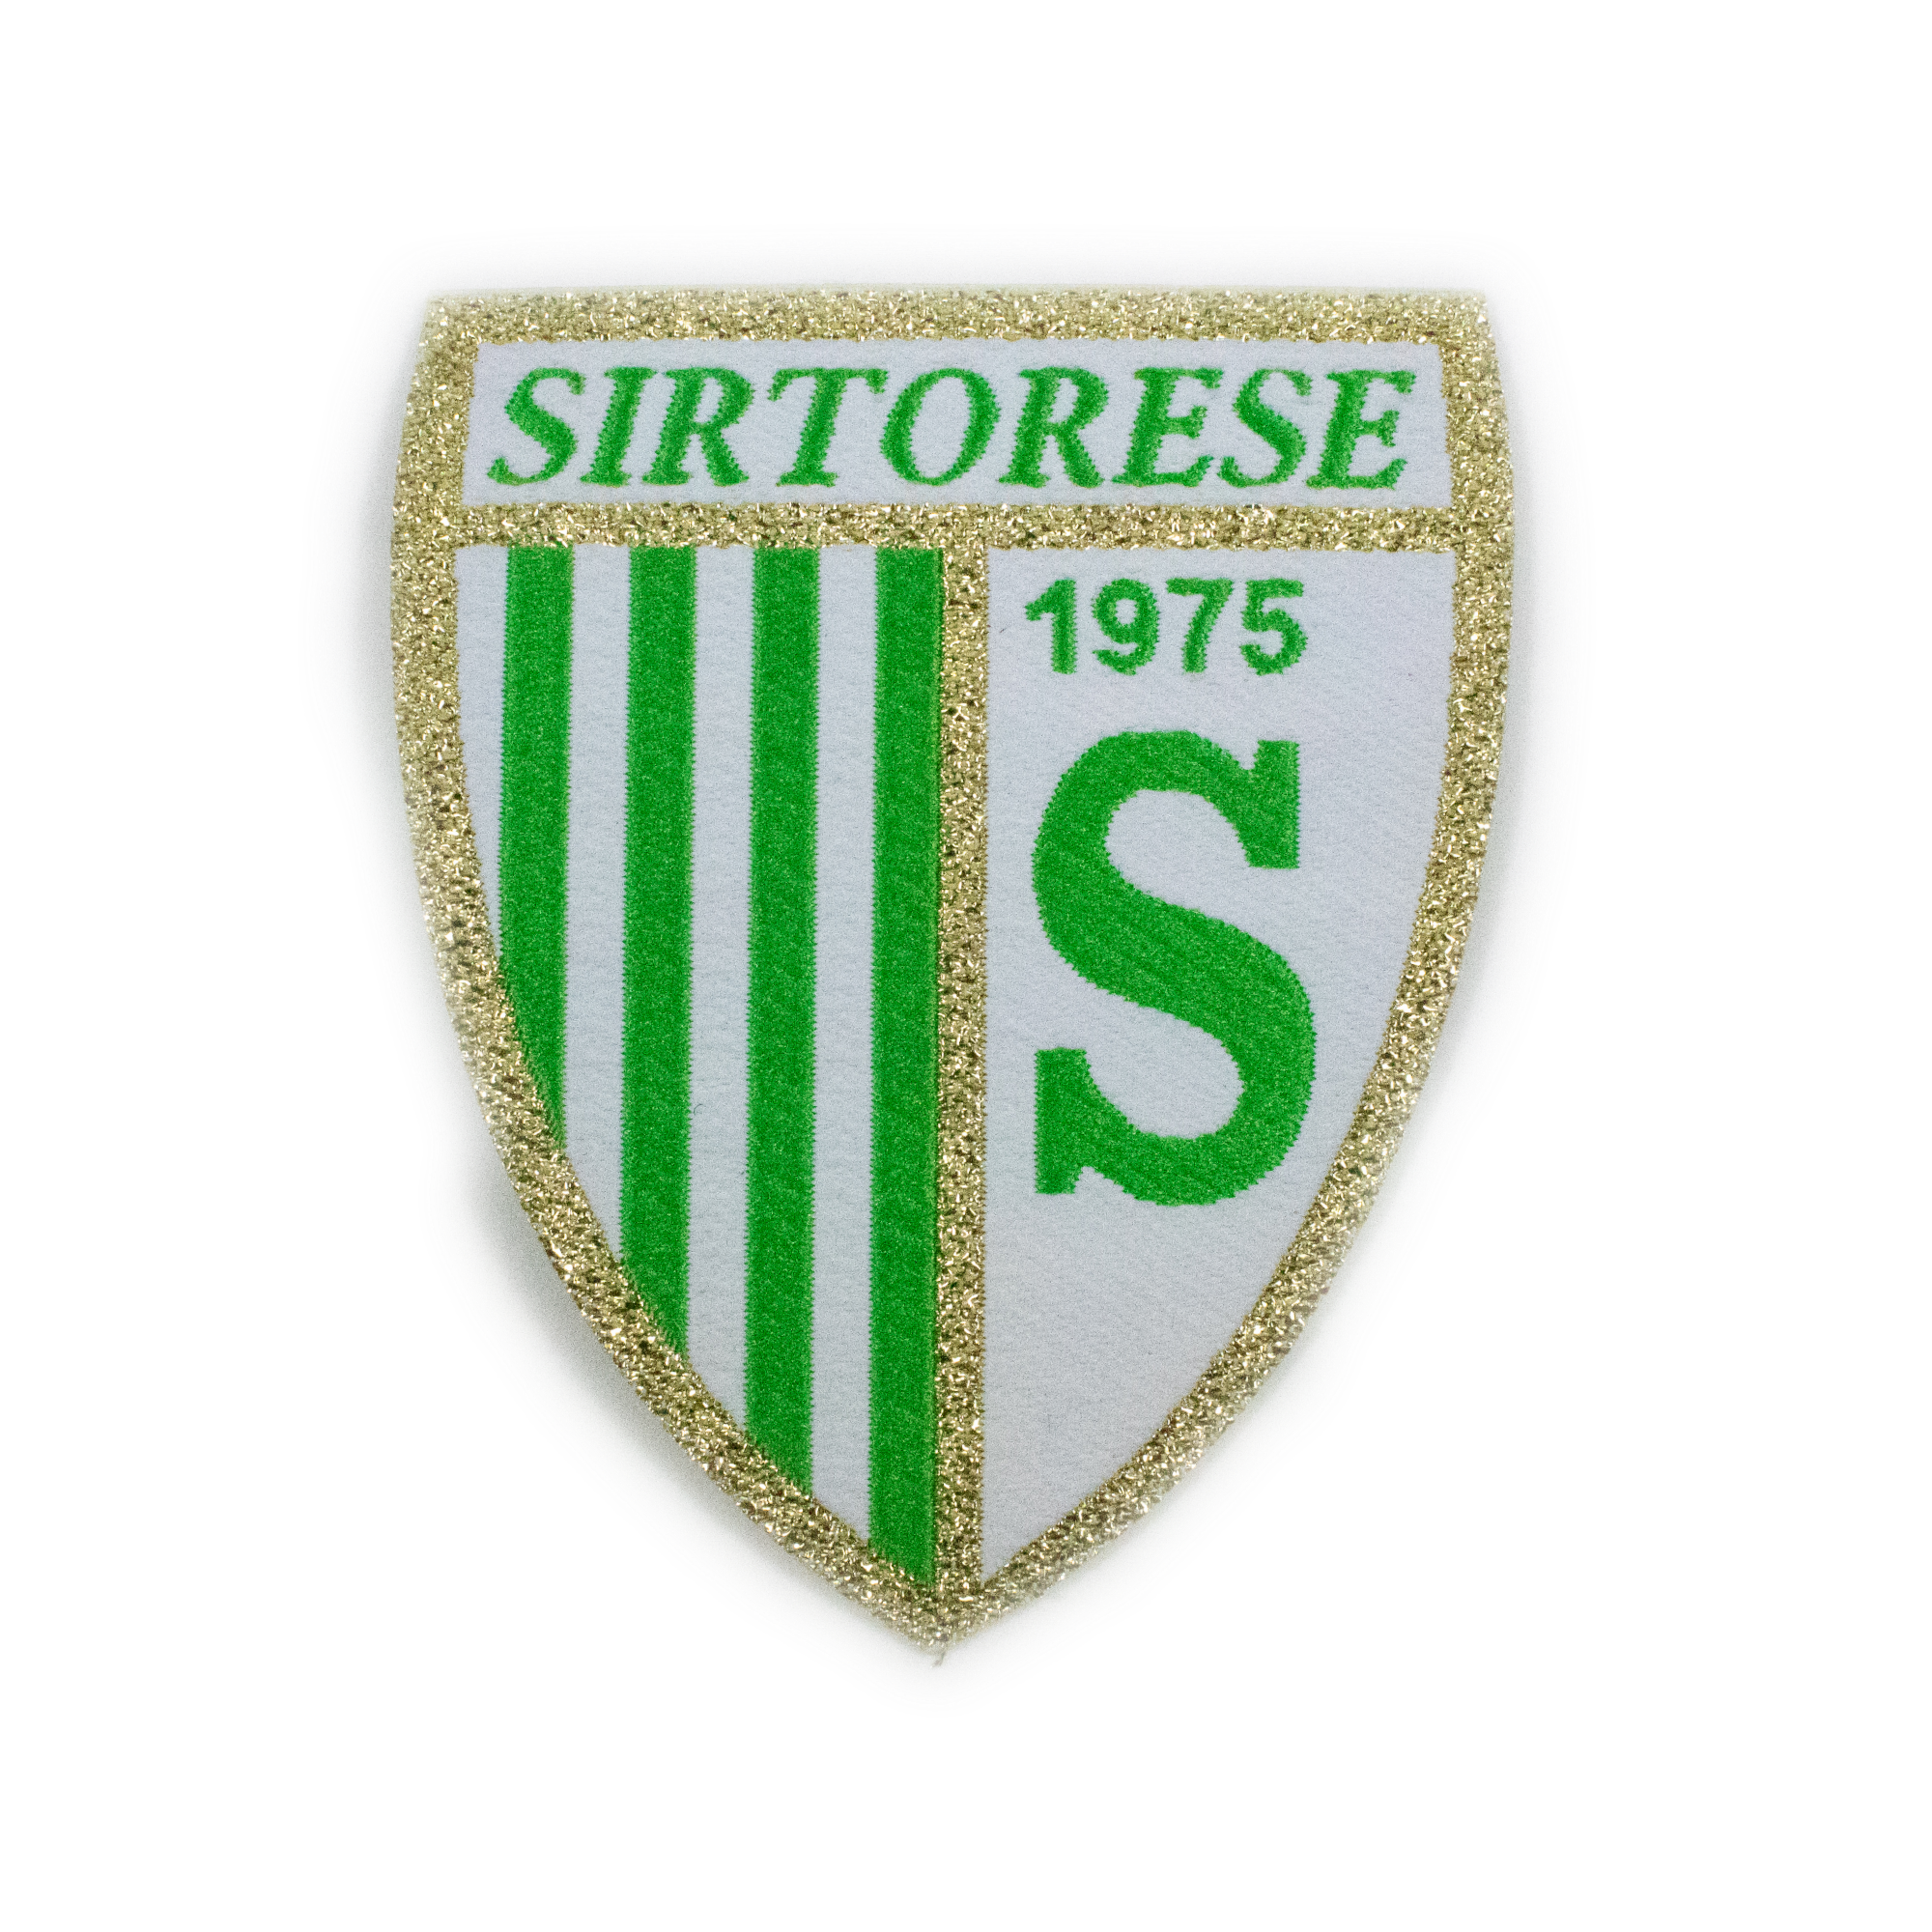 sirtorese.png